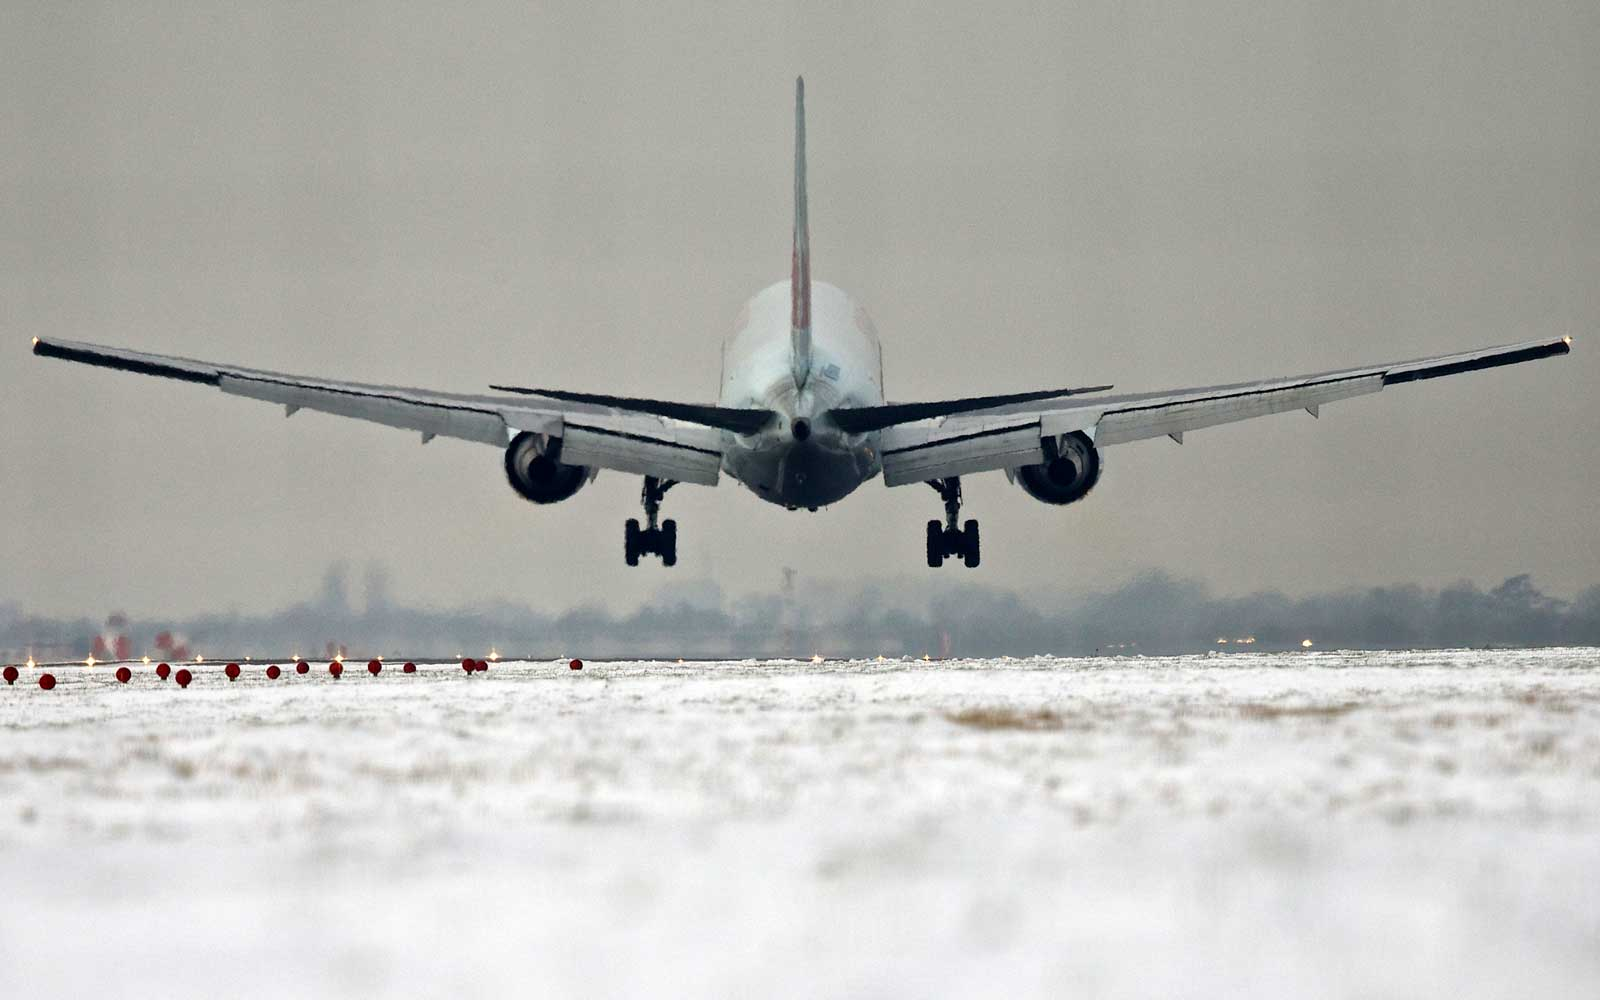 Heathrow Airport in London in snow